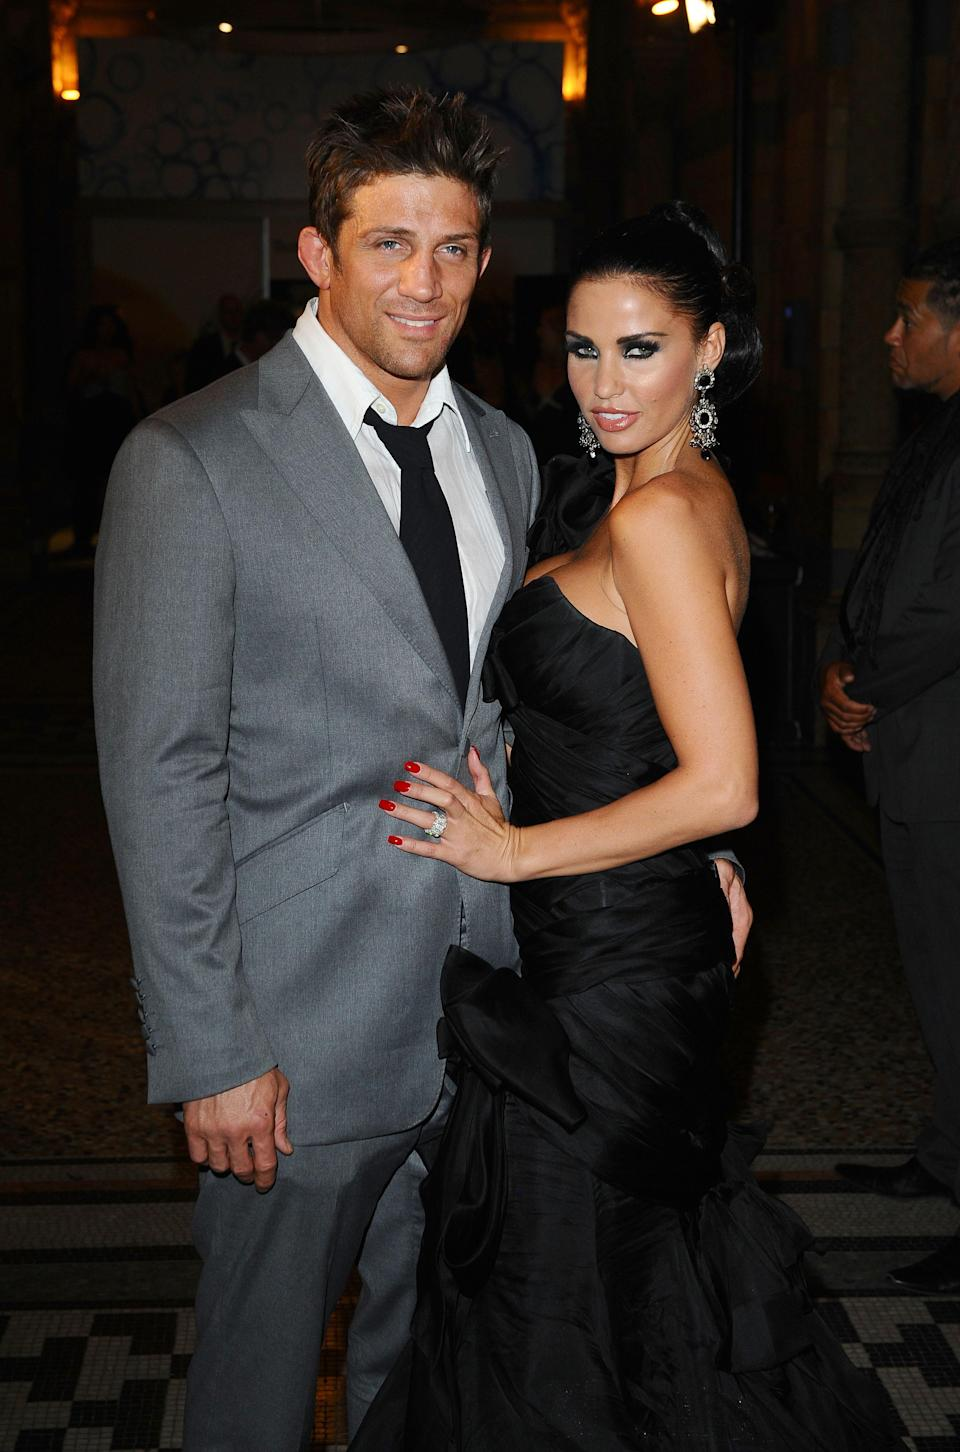 Alex Reid and Katie Price arriving for the Philips British Academy Film Awards aftershow party, at the Natural History Museum, London.